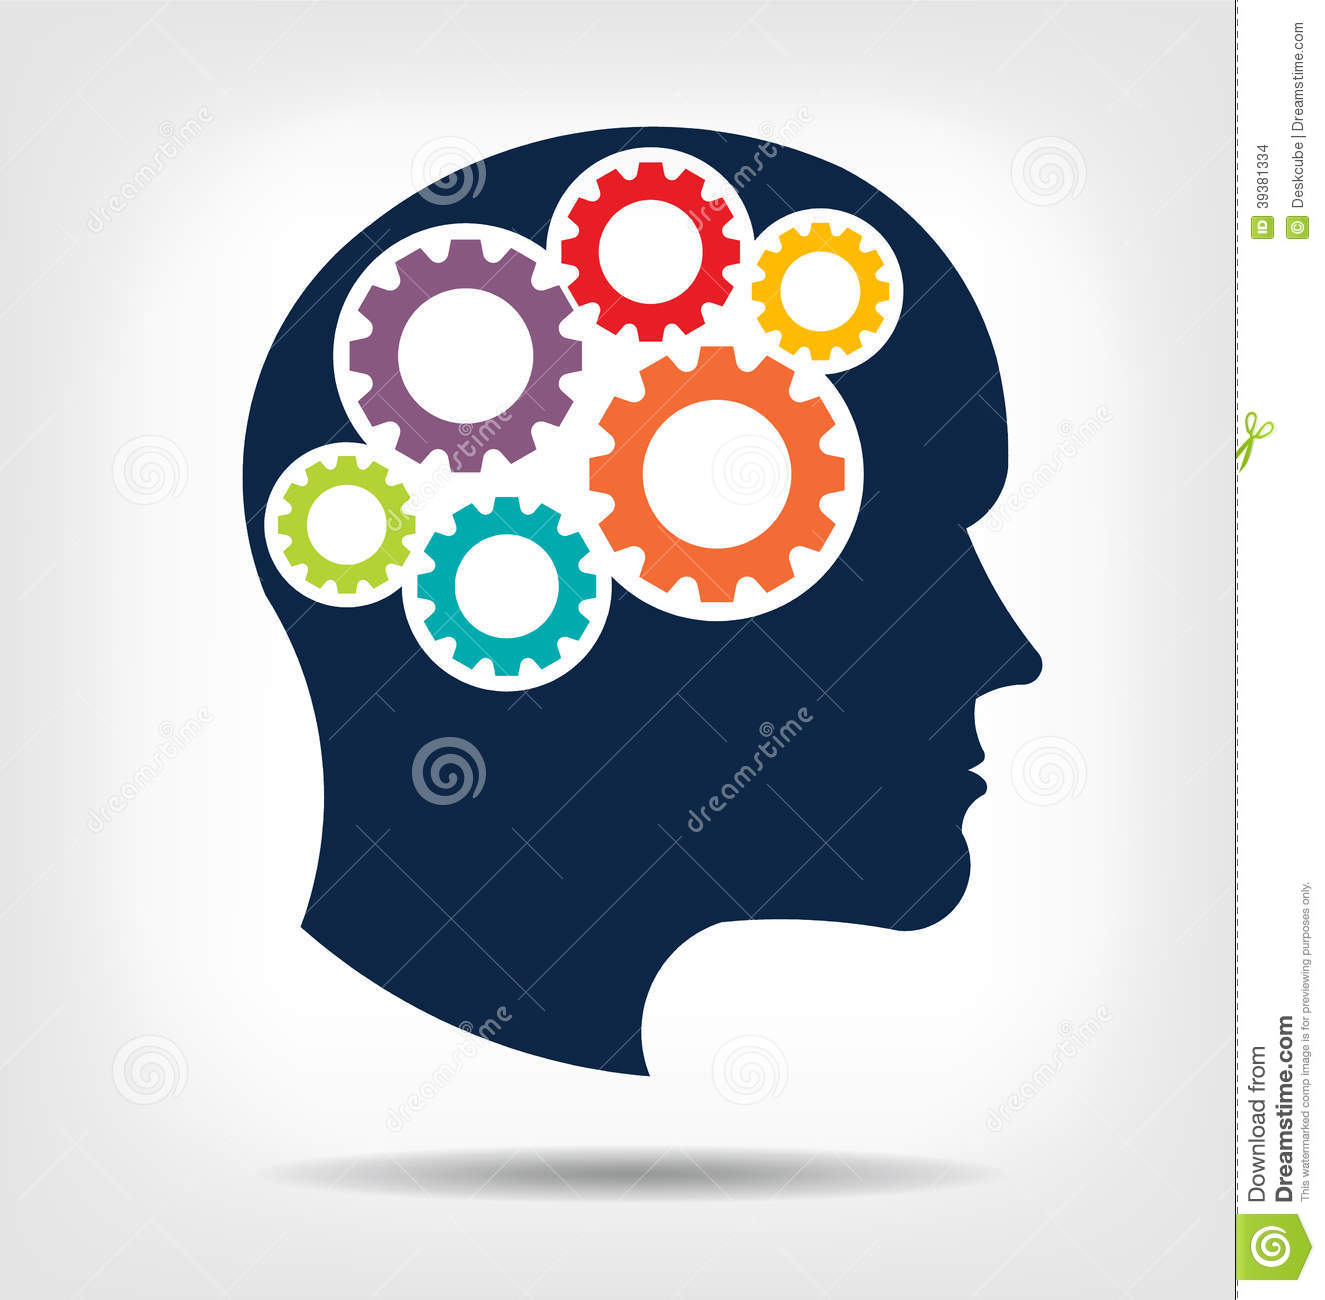 Mind Teaser clipart brain memory #4 - Thinking Brain PNG HD